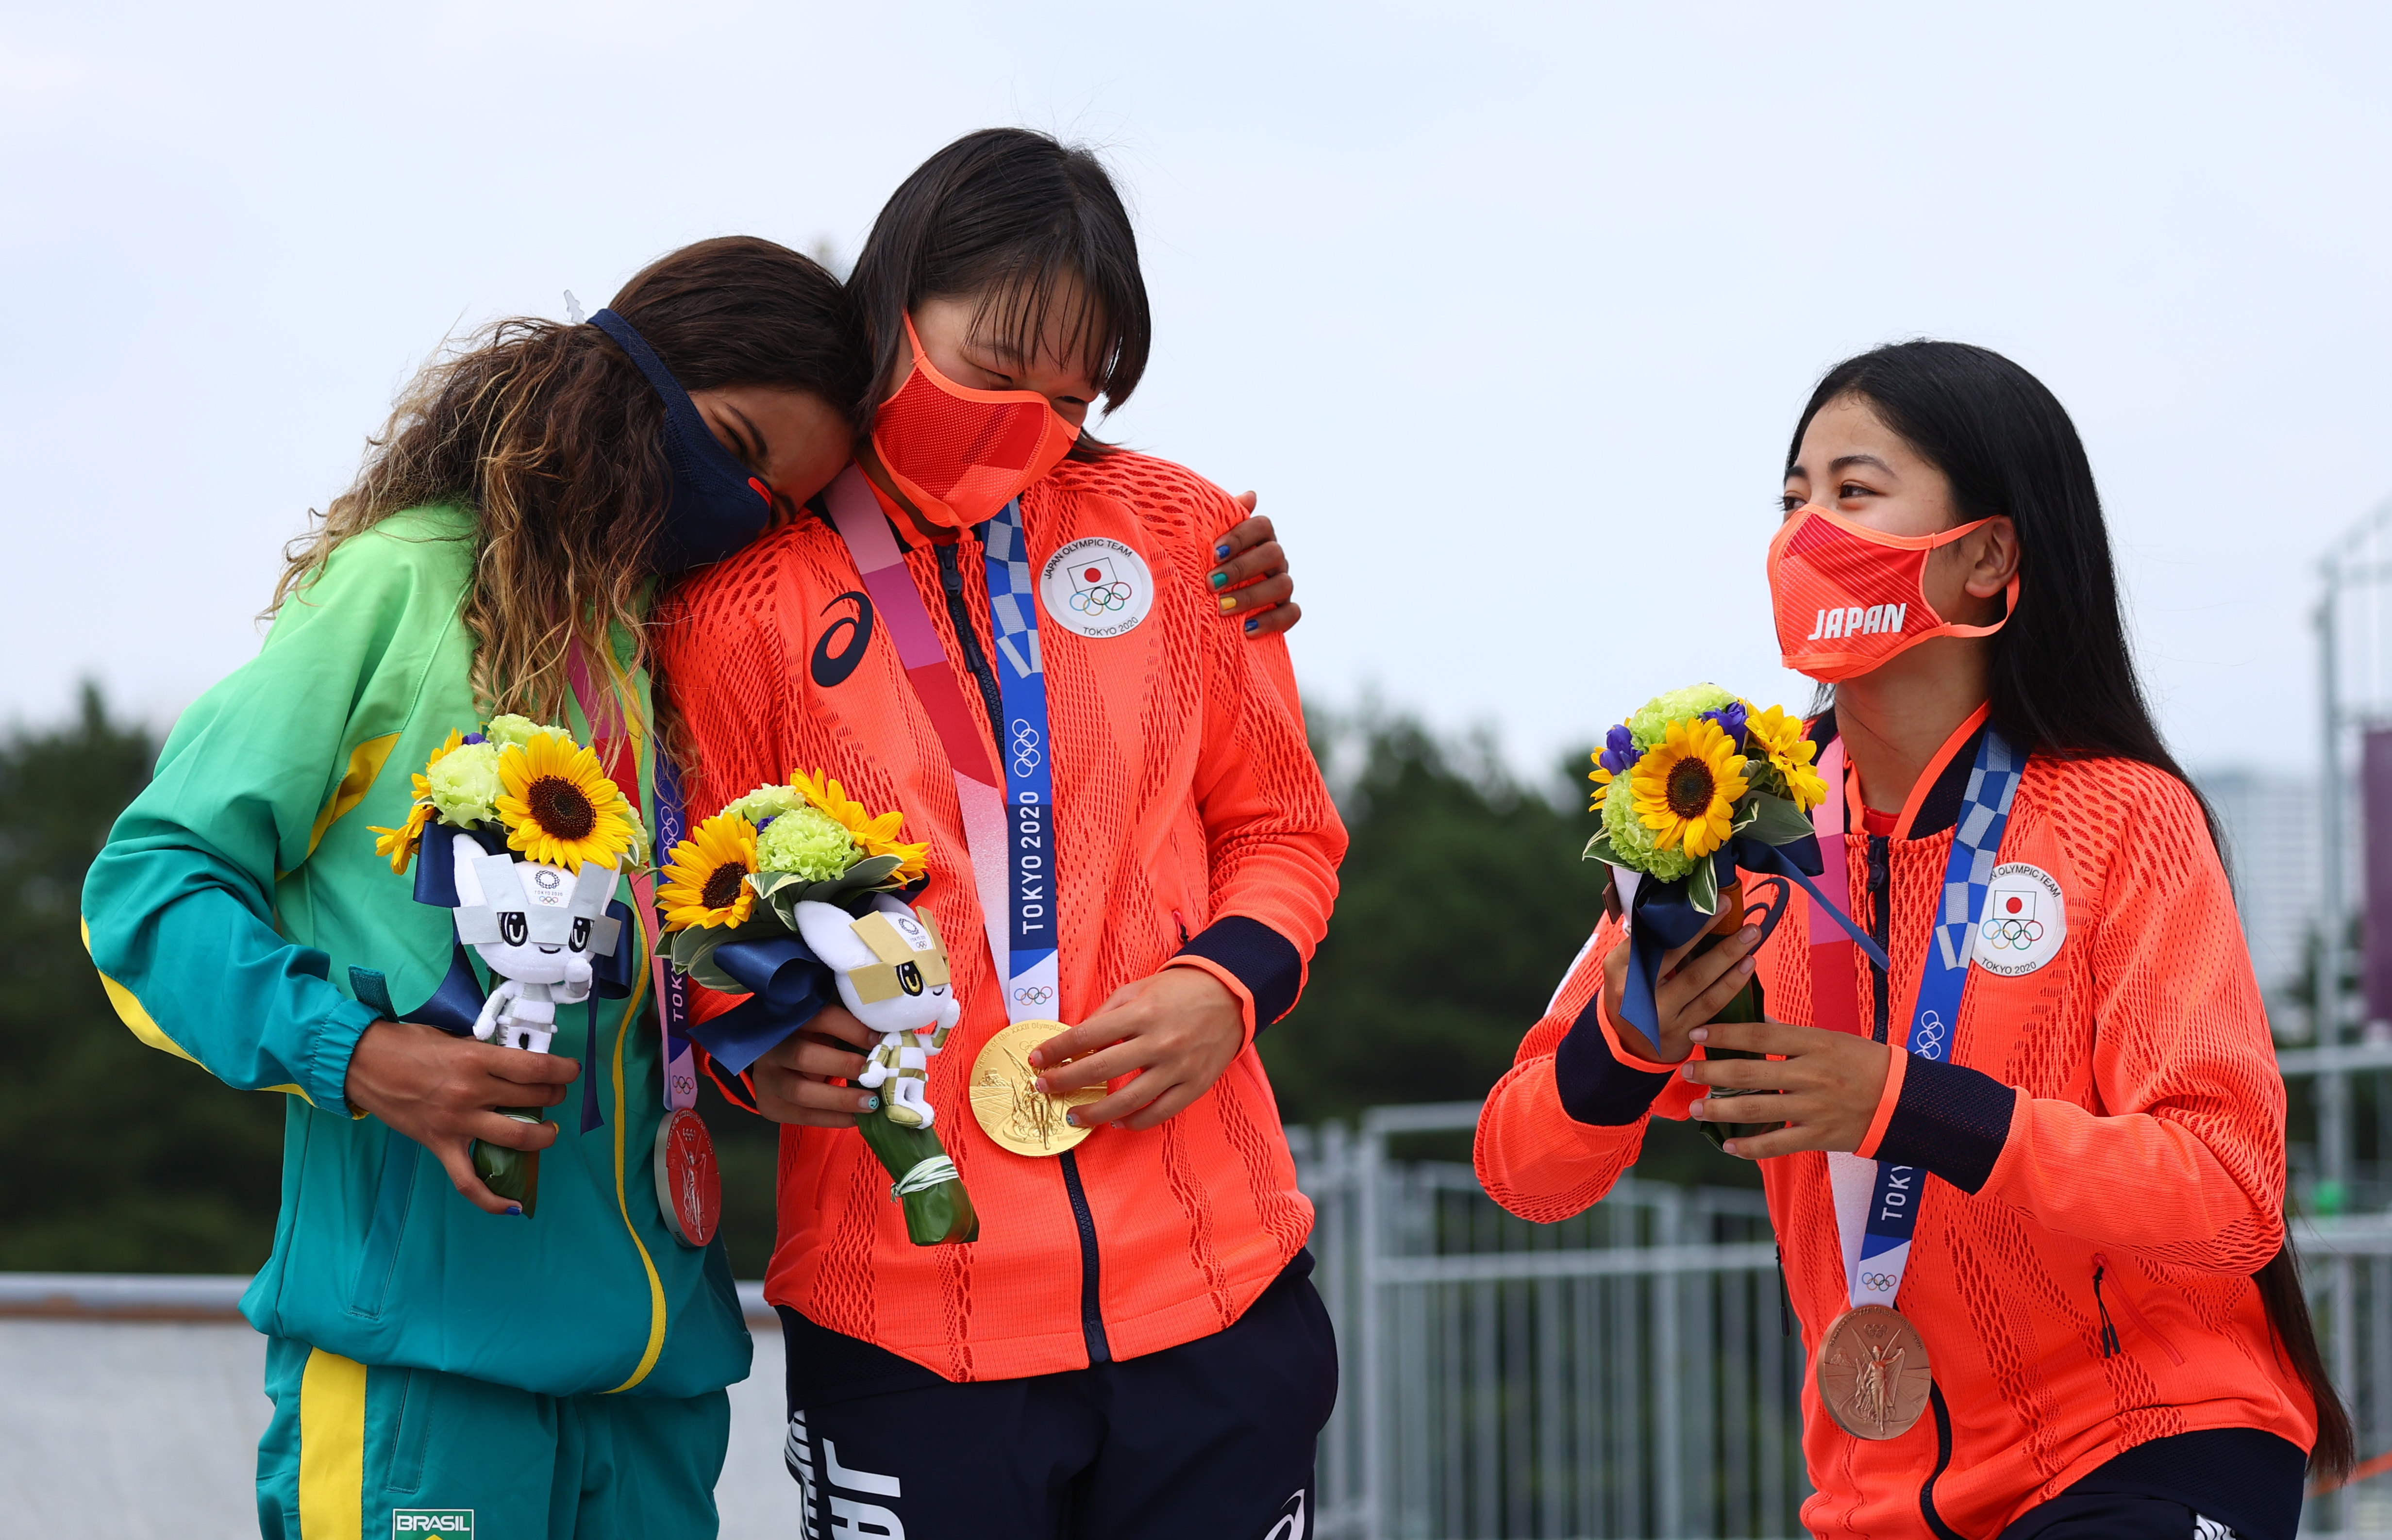 Tokyo 2020 Olympics - Skateboarding - Women's Street - Medal Ceremony - Ariake Urban Sports Park - Tokyo, Japan - July 26, 2021. Rayssa Leal of Brazil, Momiji Nishiya of Japan and Funa Nakayama of Japan pose with their medals during medal ceremony. REUTERS/Lucy Nicholson